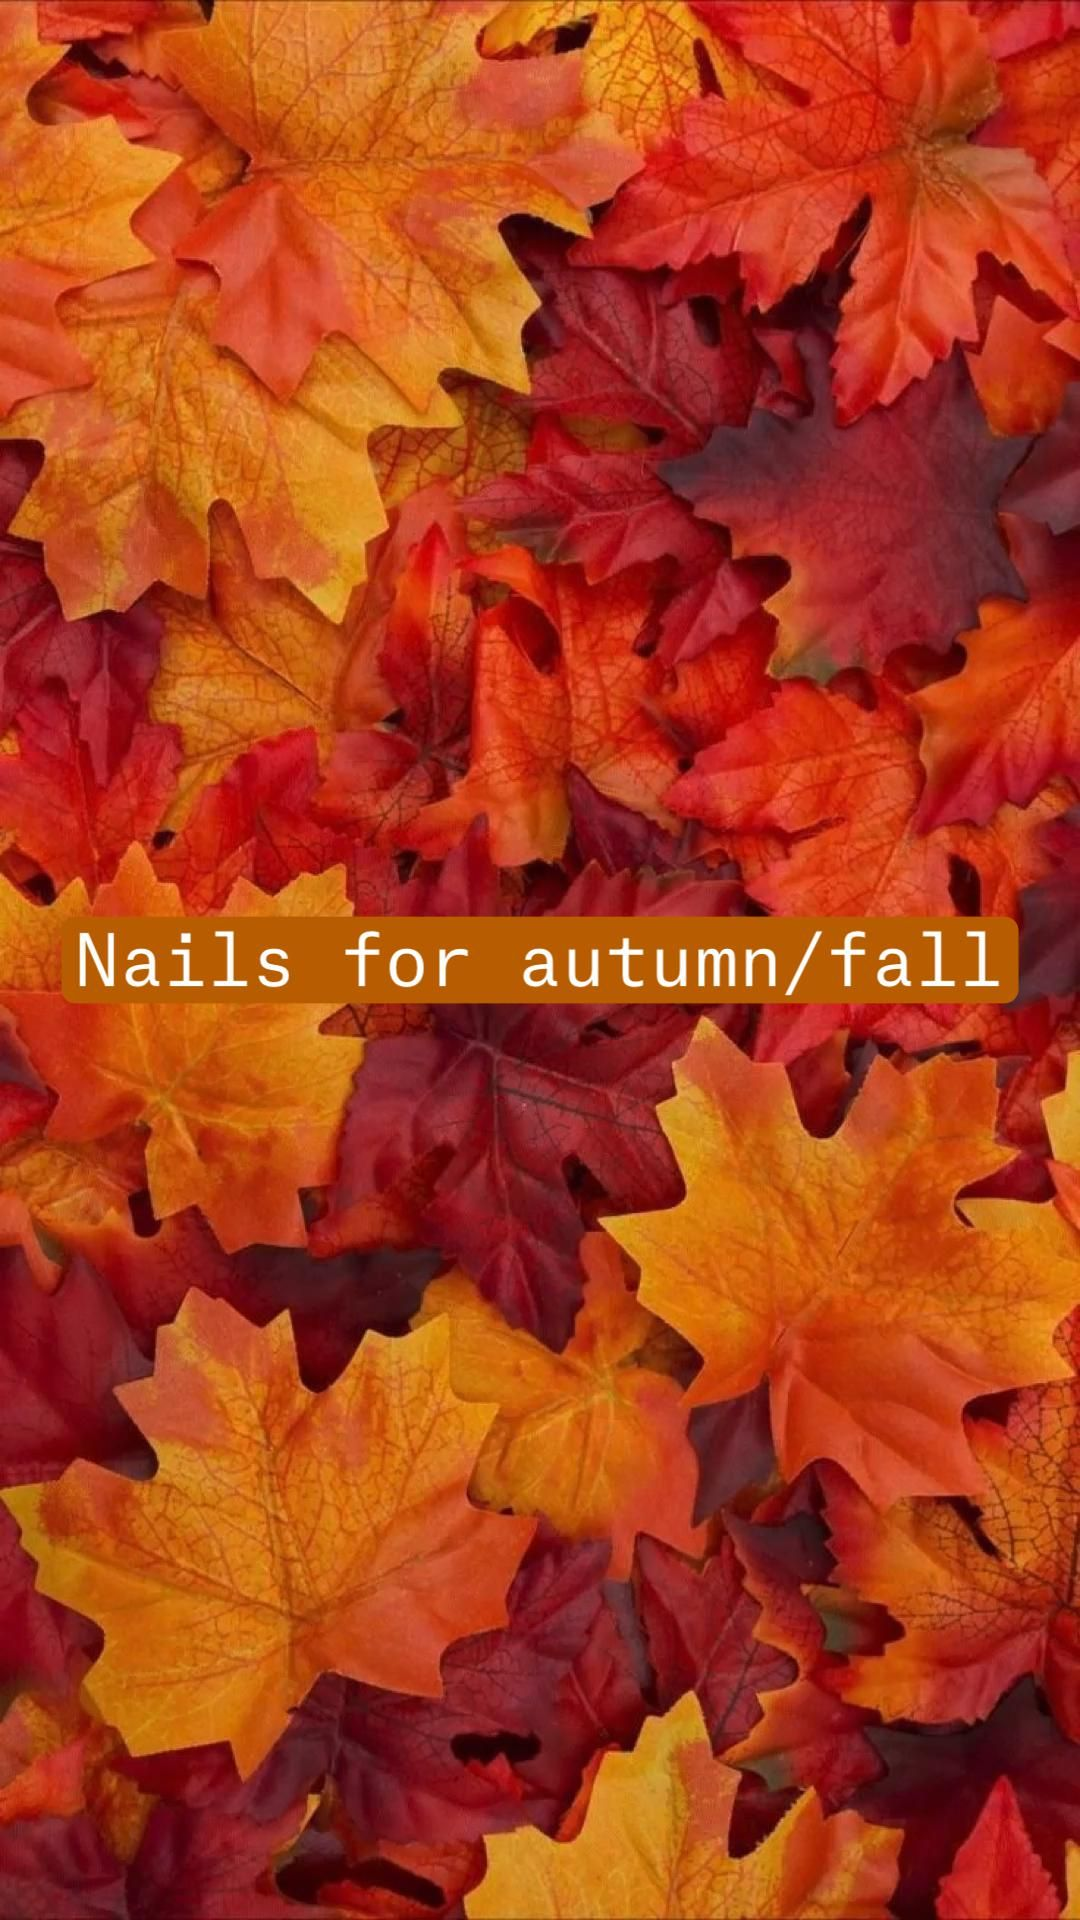 Nails for autumn/fall